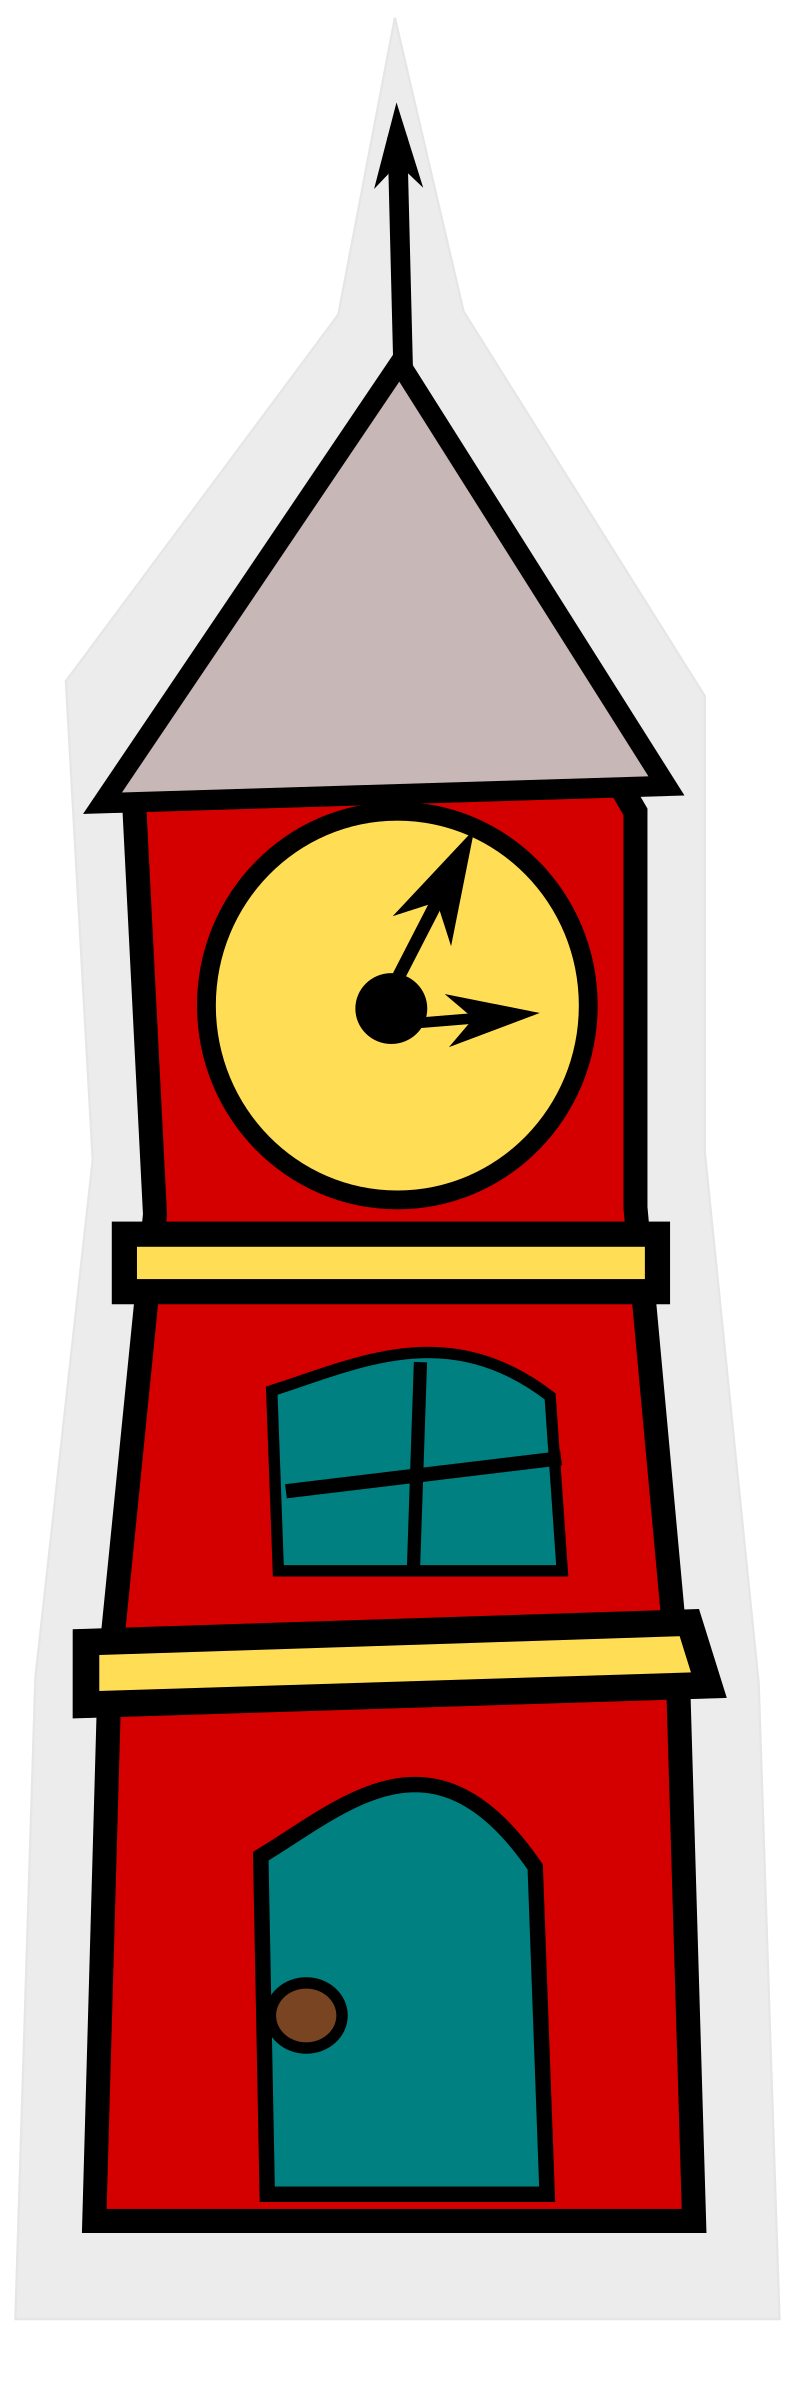 Towers clipart cartoon Clock with with a cartoon